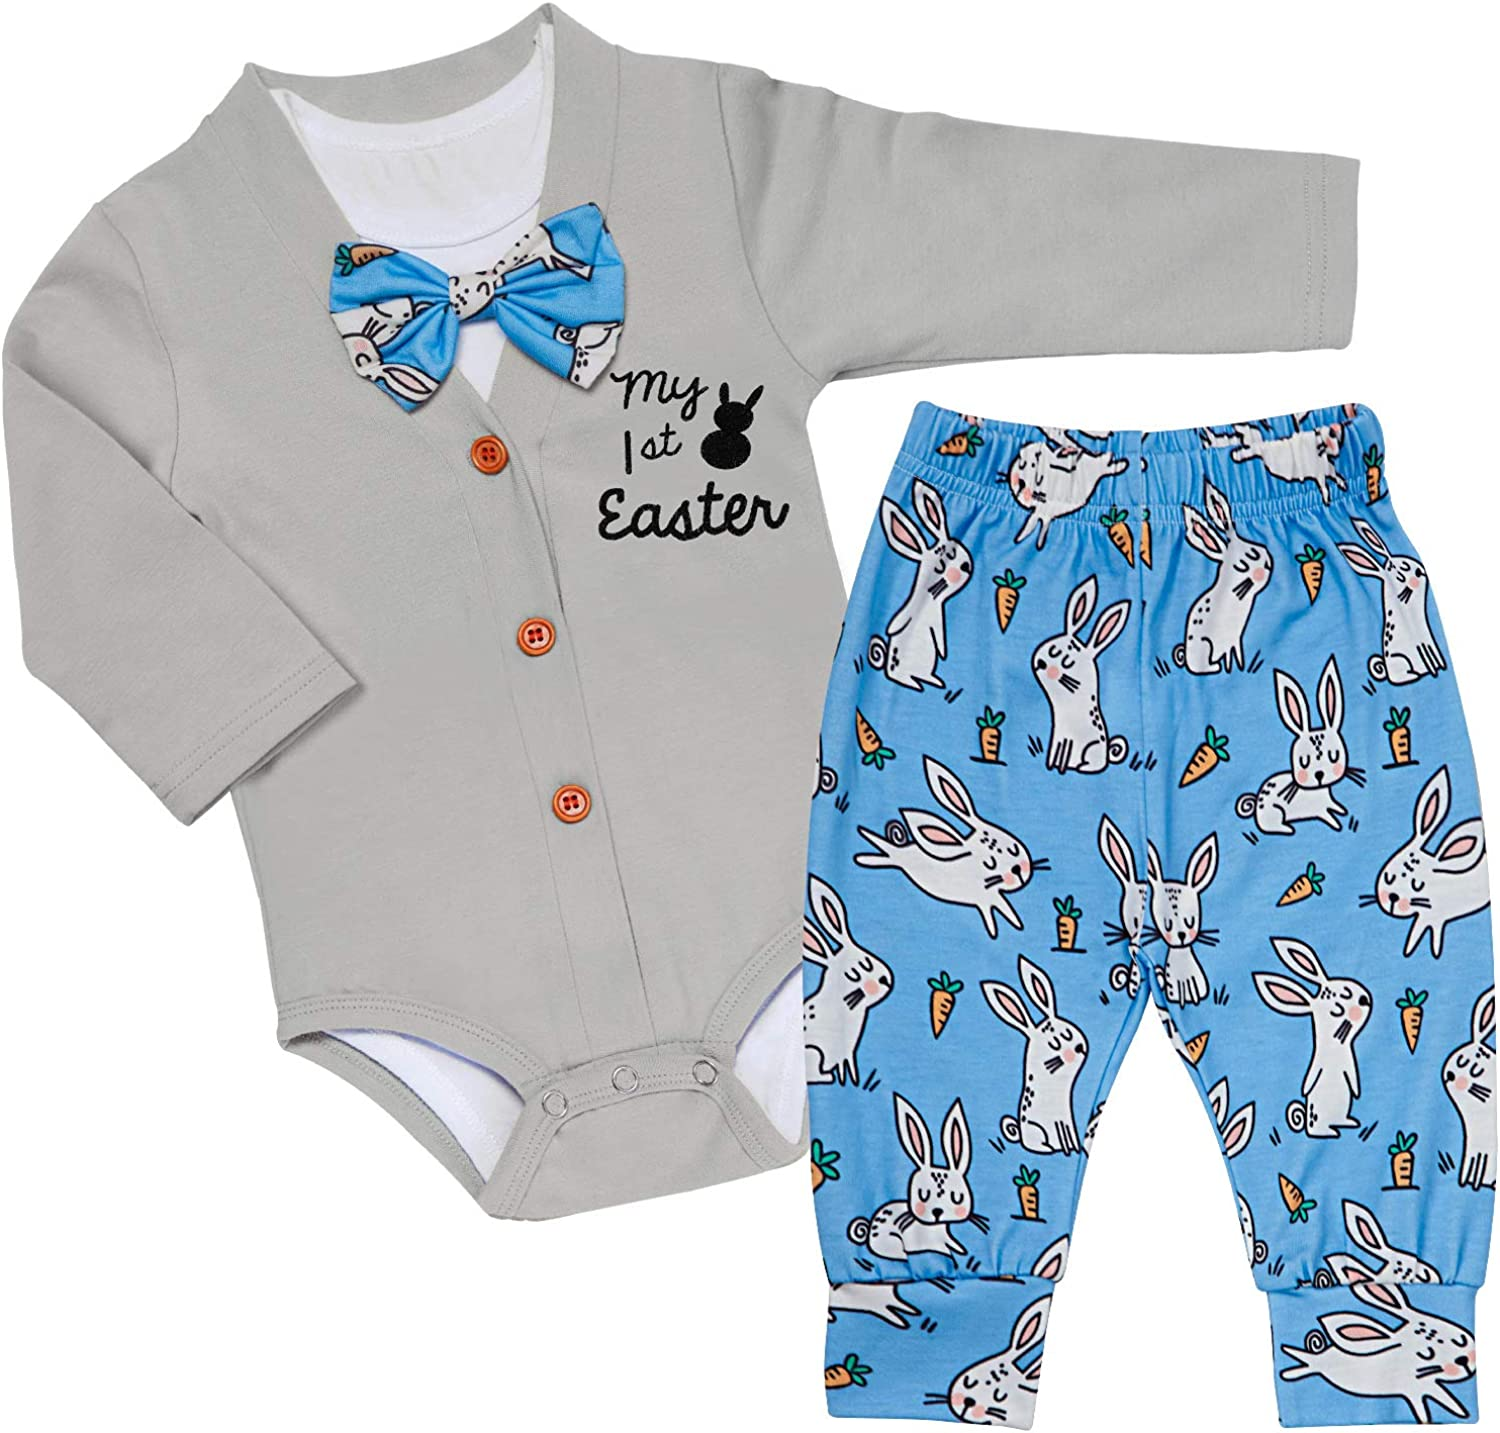 My 1st Easter Baby Boys Clothes Romper Long Sleeve Bodysuit + Radish Pants Outfit 3PCs Sets